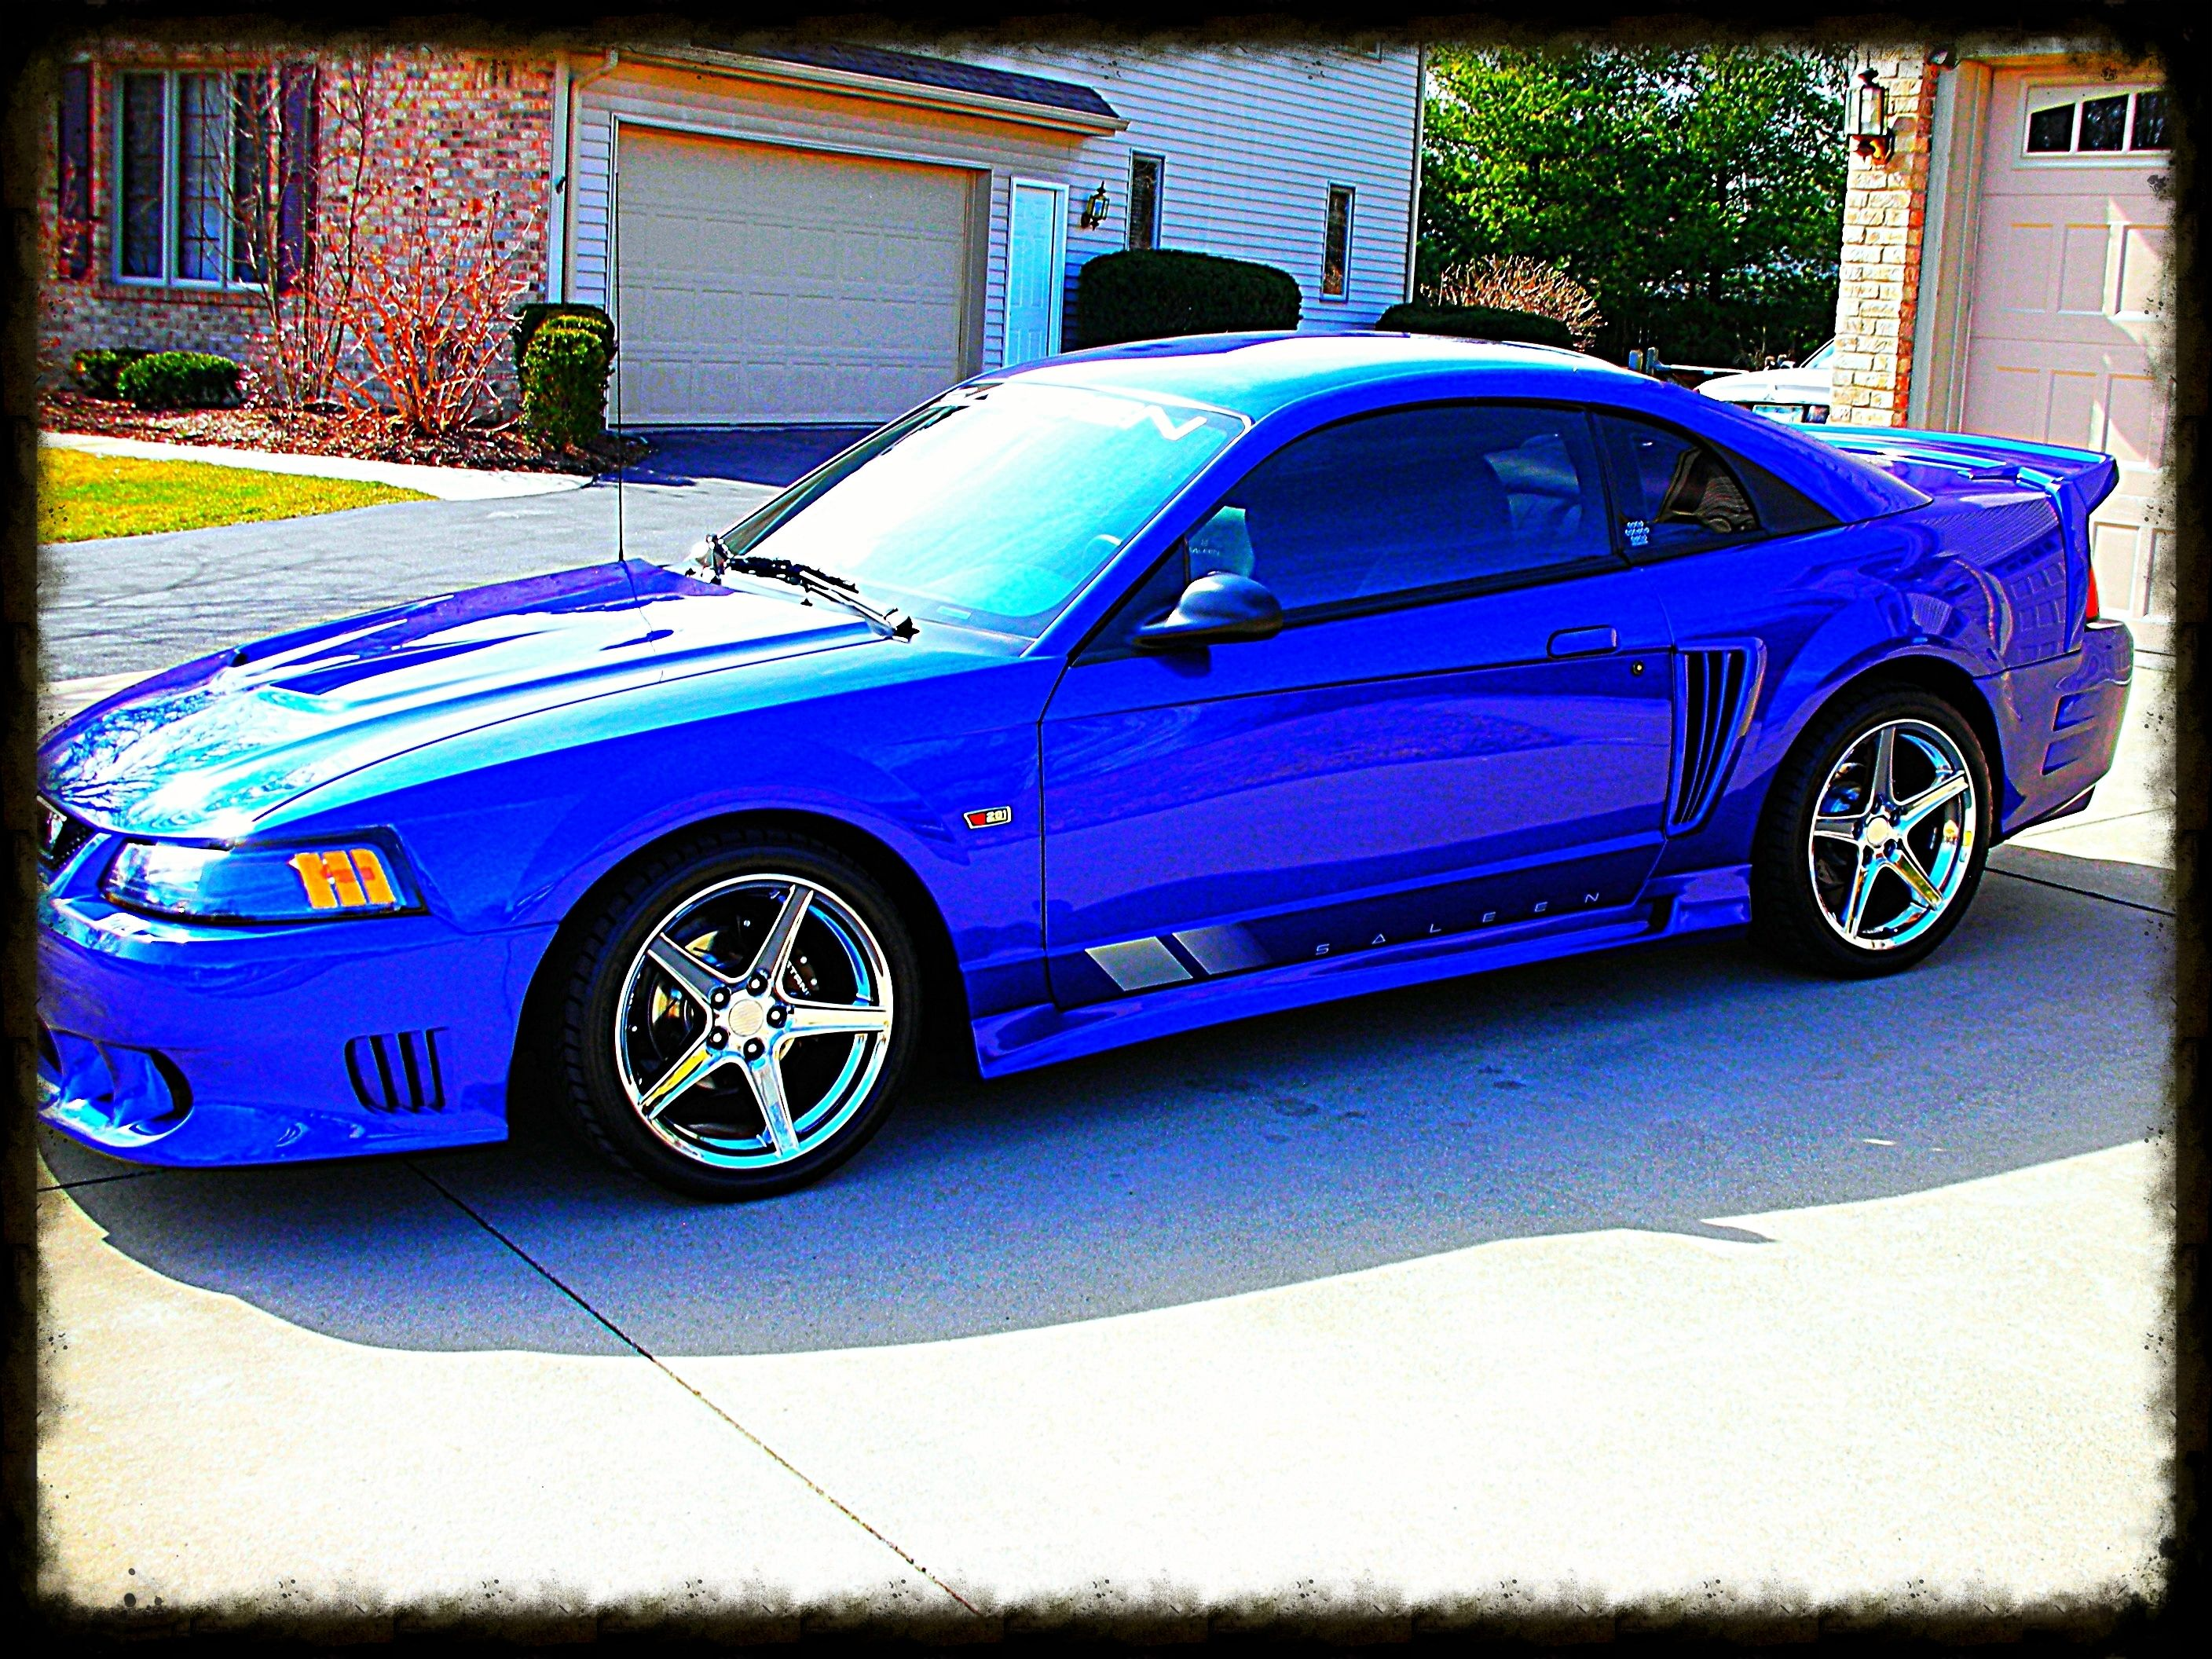 my 2003 saleen sonic blue supercharged 1 of 8 170 my pins pinterest saleen mustang. Black Bedroom Furniture Sets. Home Design Ideas